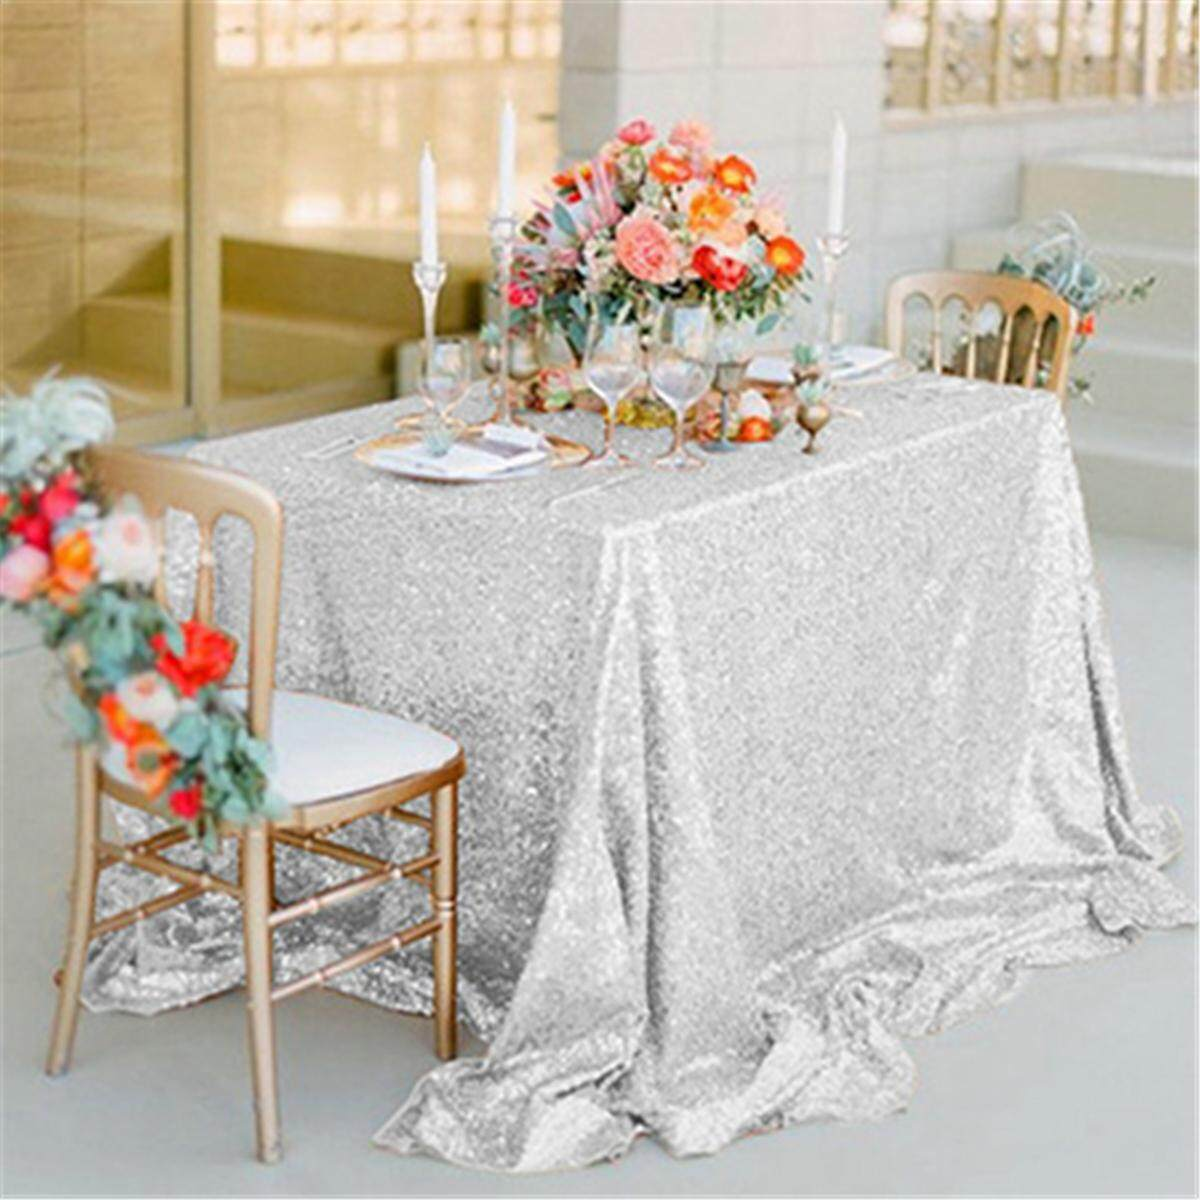 New Sparkly Sequin Tablecloth 130cm Square For Wedding/ Dessert Table Decor By Glimmer.